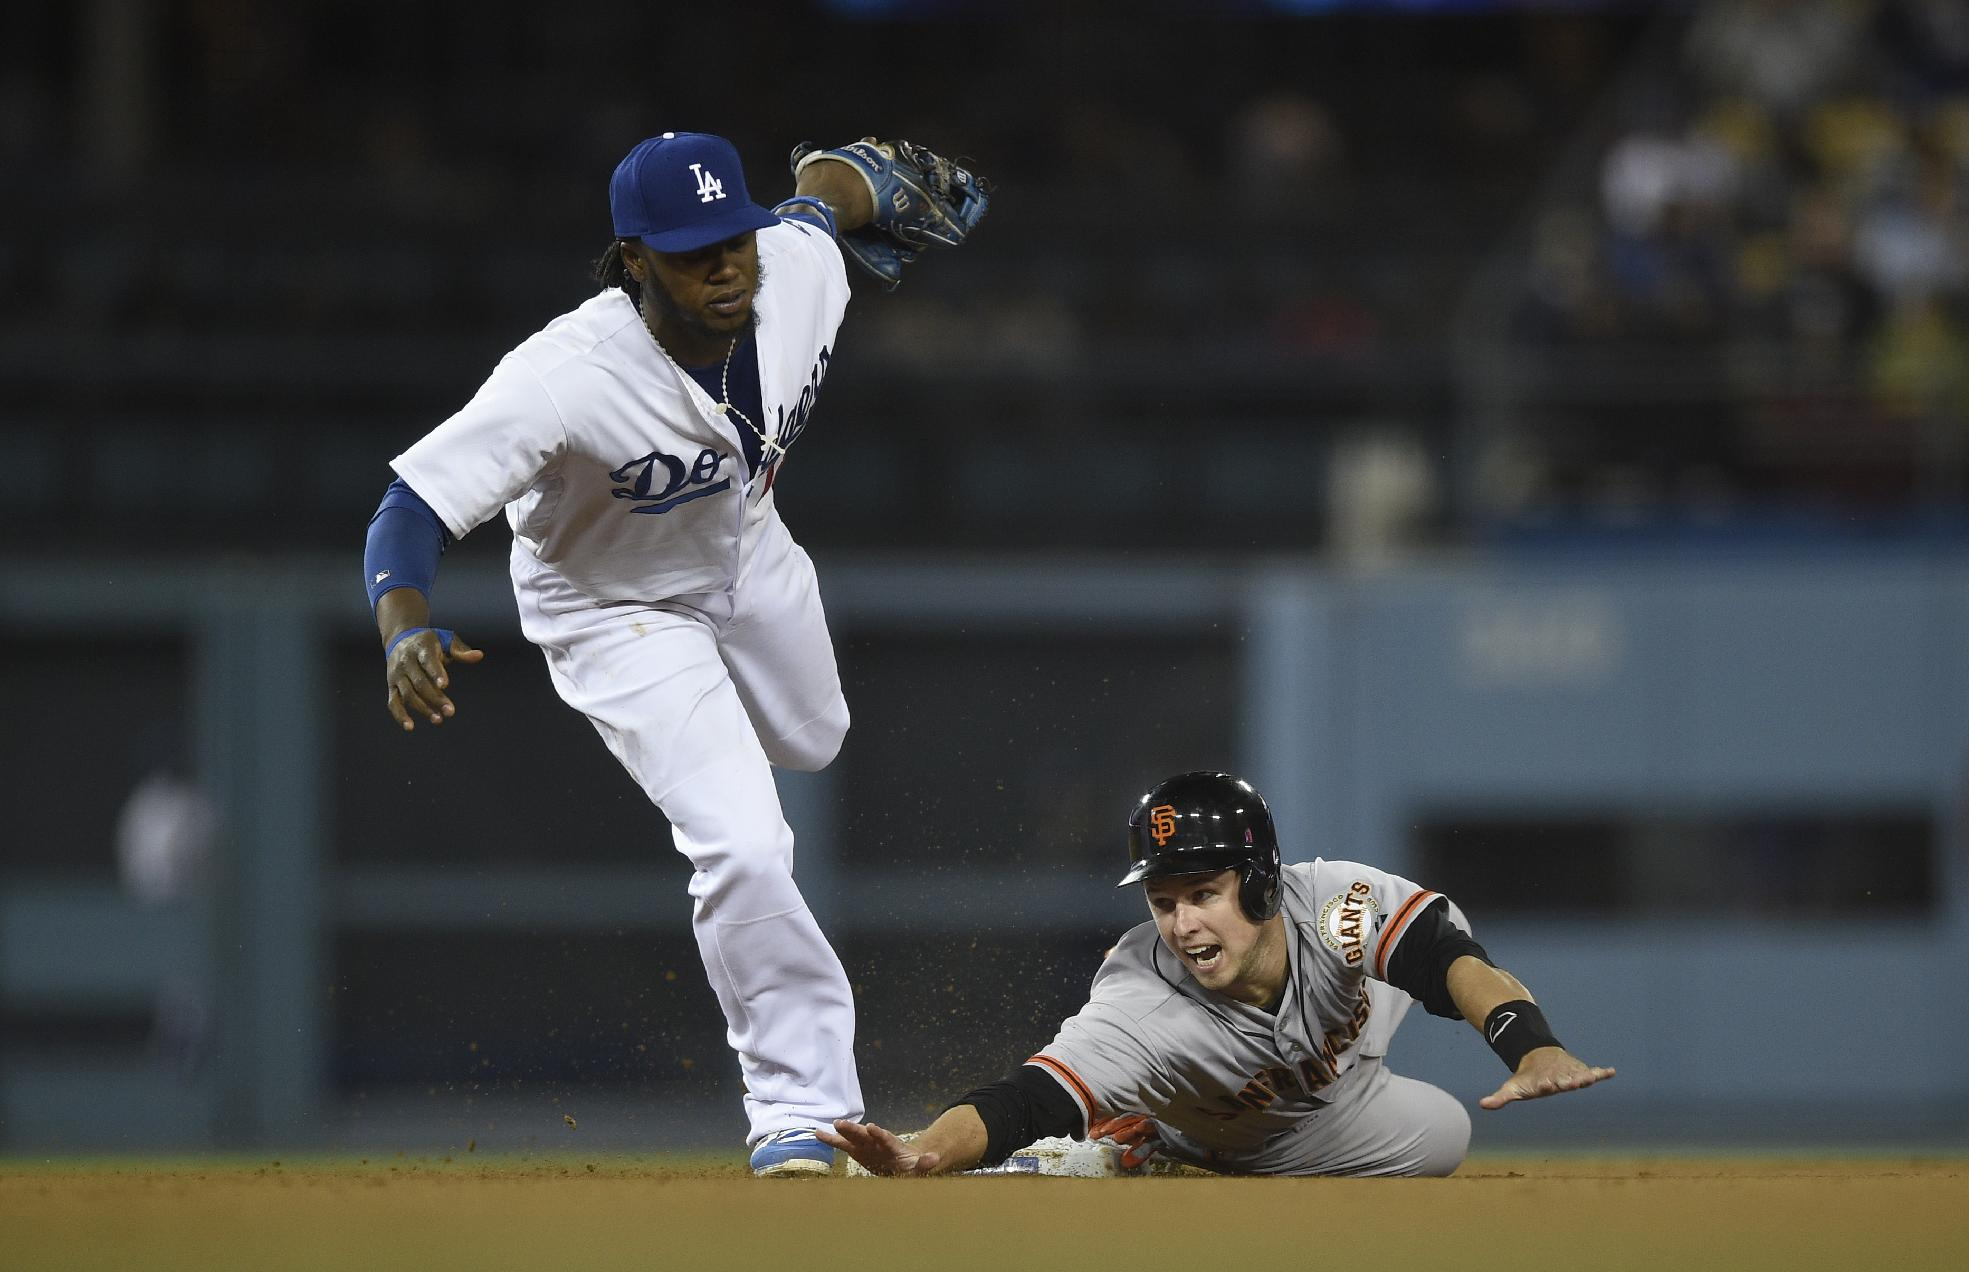 San Francisco Giants' Michael Morse, right, reacts after he is tagged out by Los Angeles Dodgers shortstop Hanley Ramirez, left, on an attempt to steal second base during the eighth inning of a baseball game in Los Angeles, Thursday, May 8, 2014